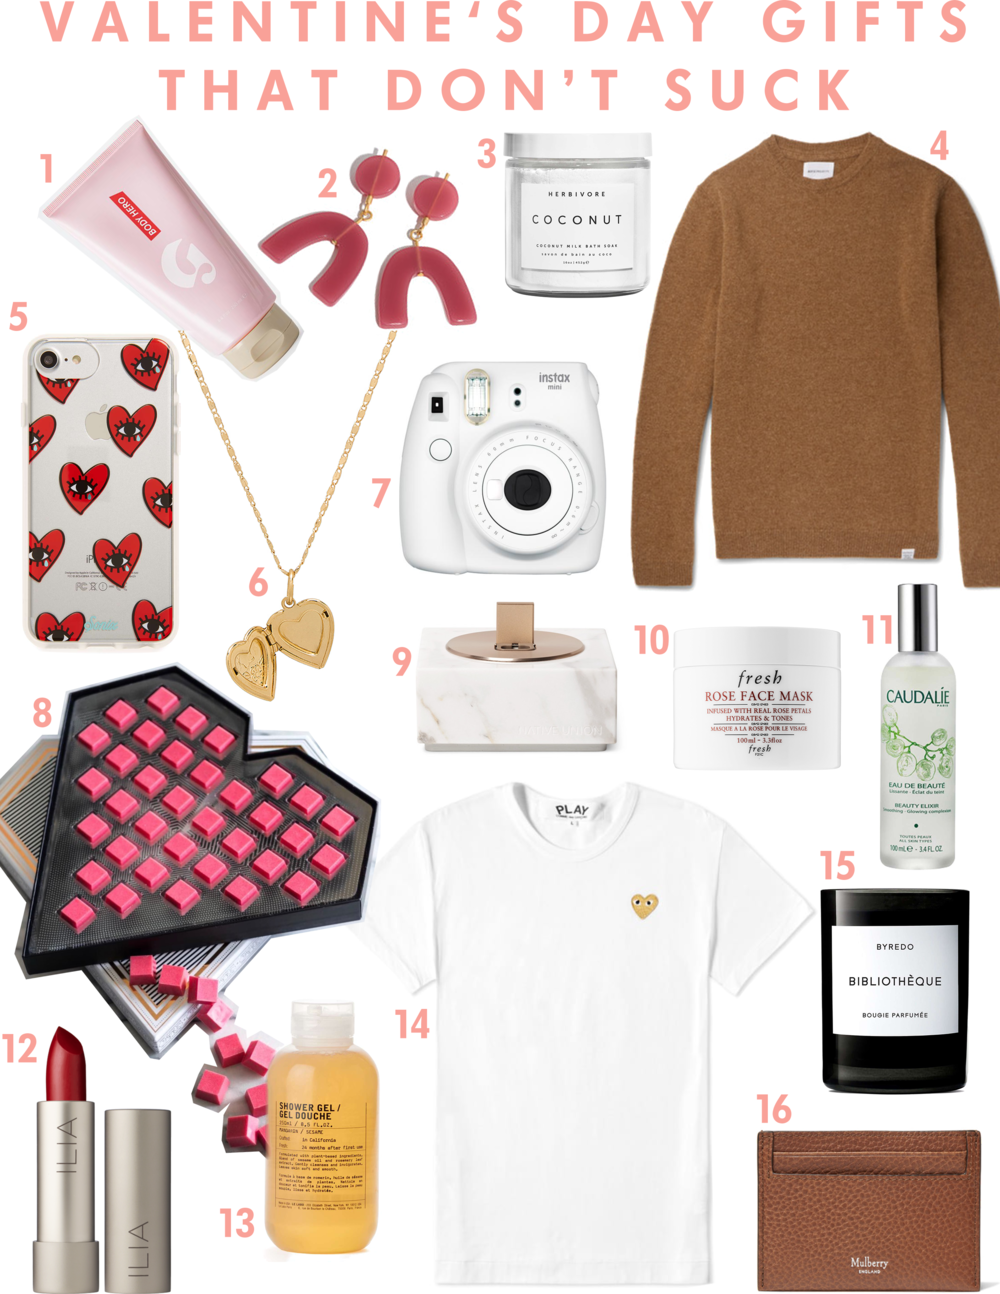 caitlin miyako taylor valentines day gift guide 2018.jpg